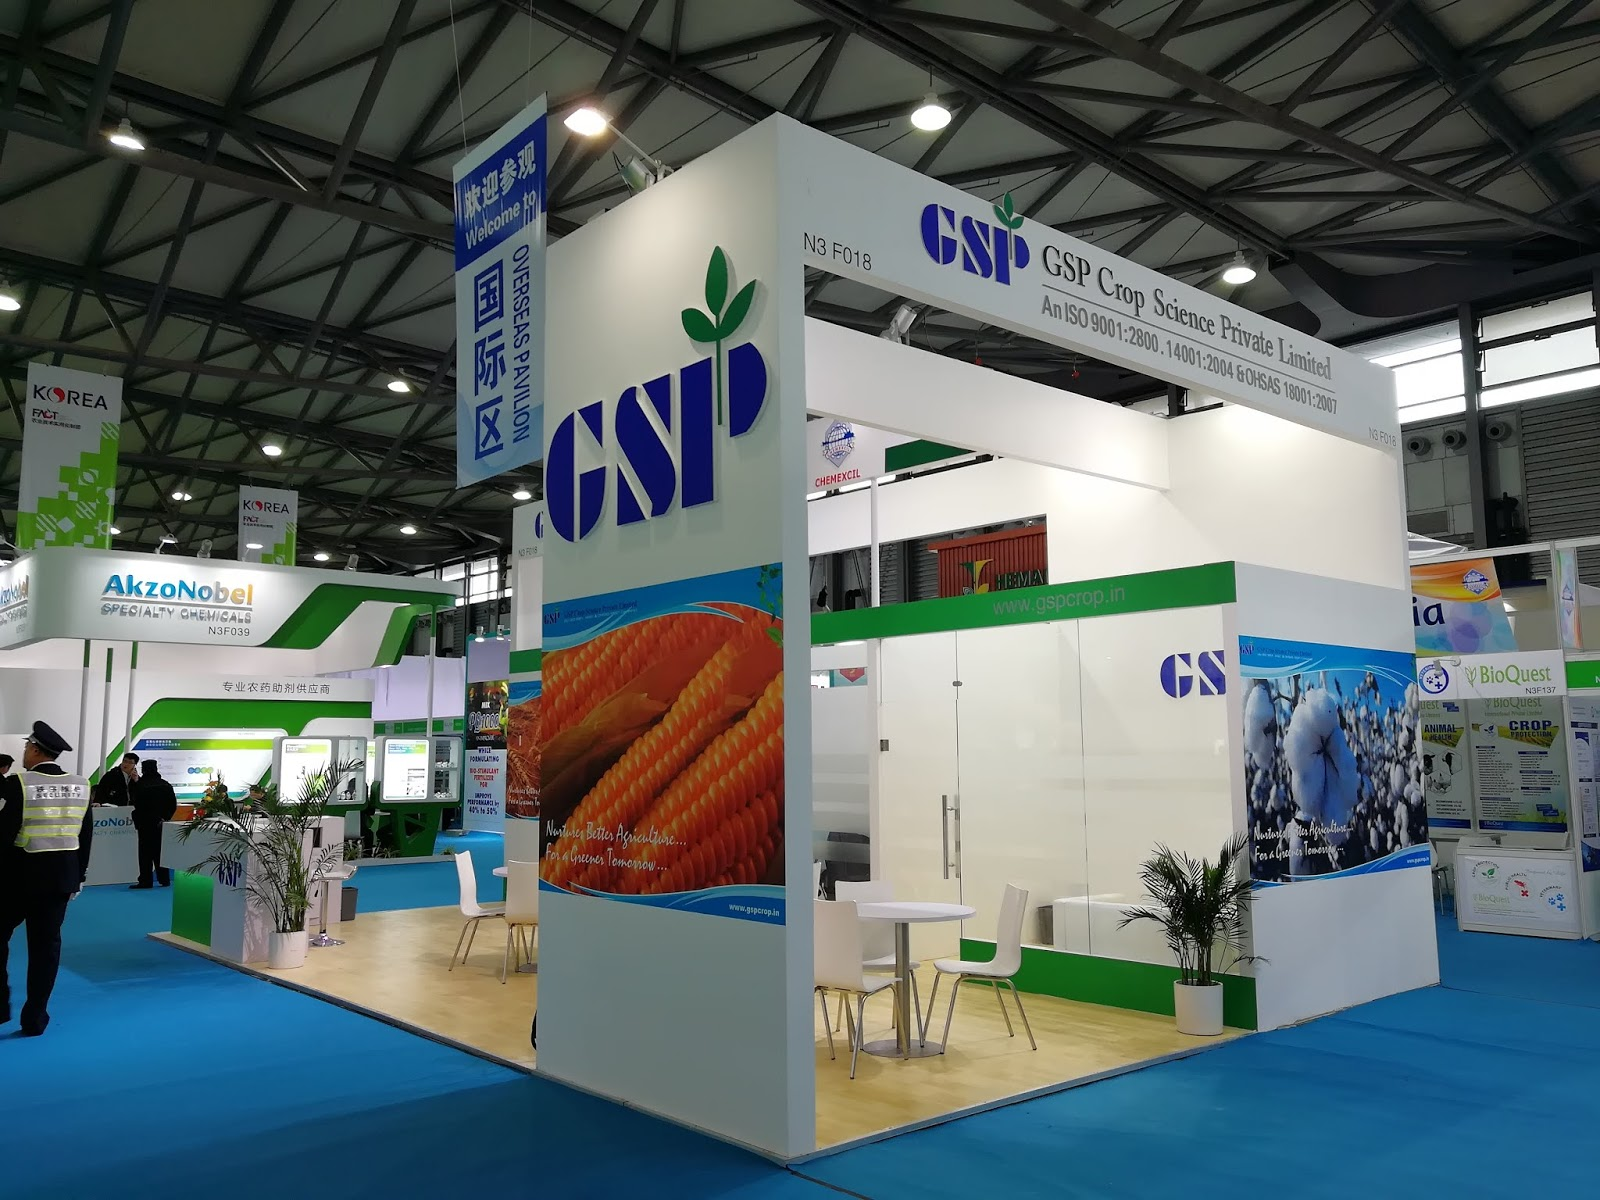 Exhibition Stand Builders China : Exhibit display booth stand contractor builder in china